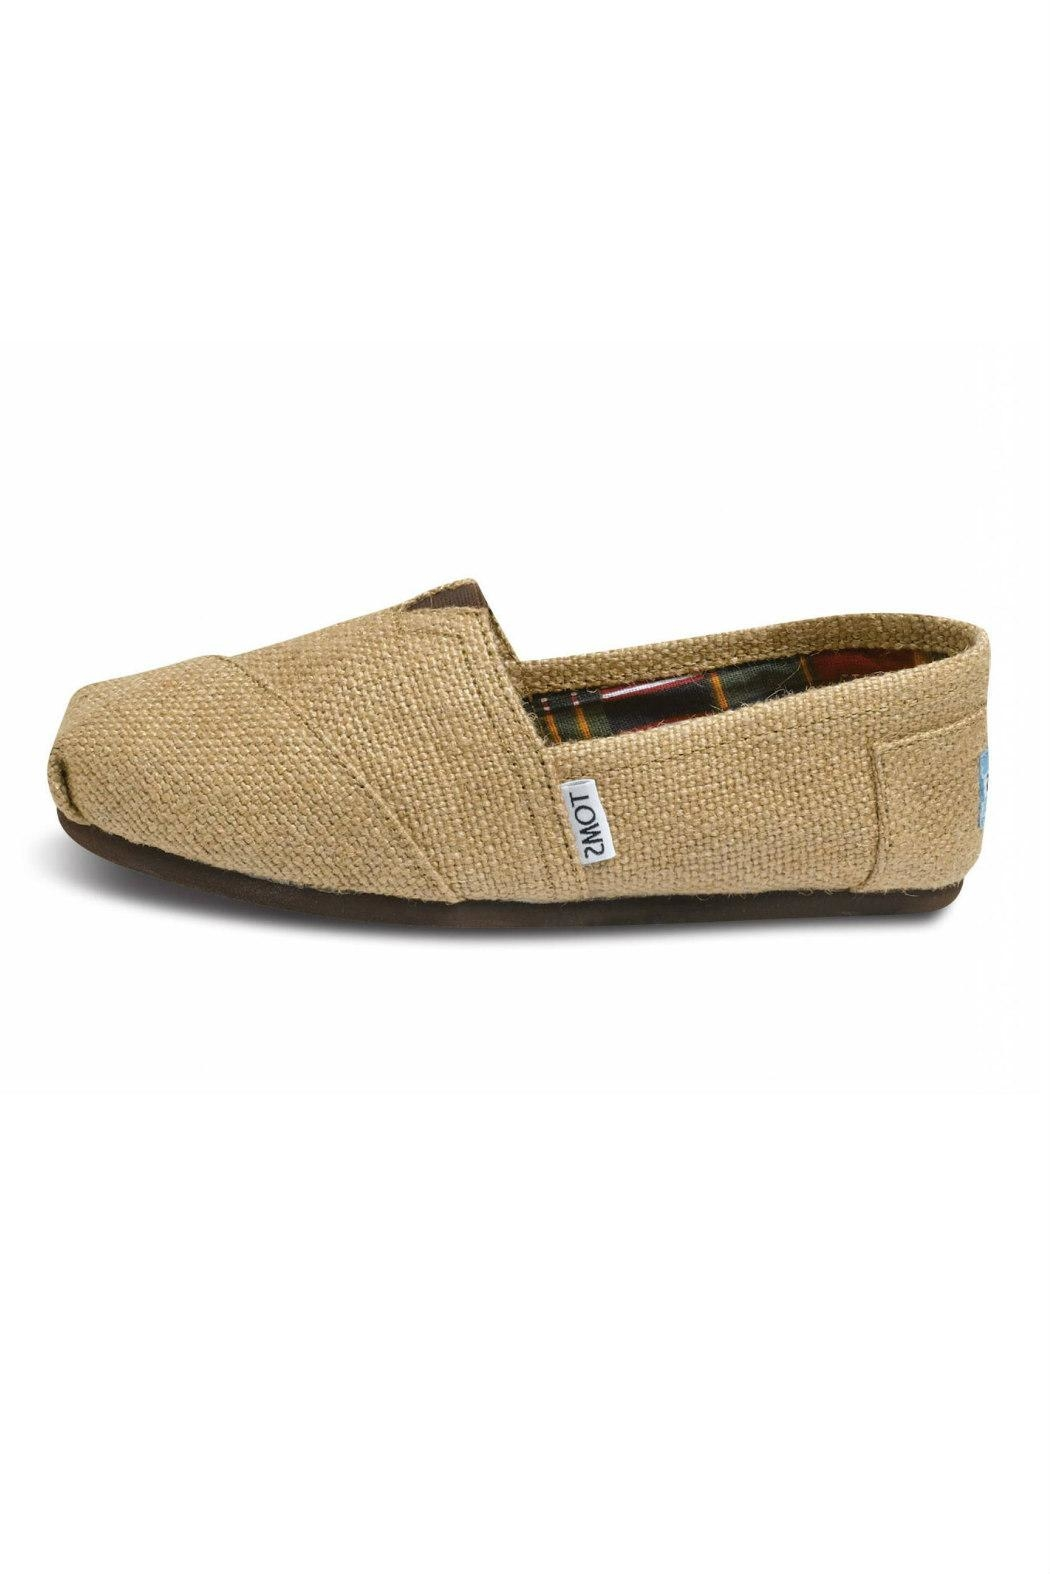 TOMS Natural Burlap Alpergata Shoes - Main Image